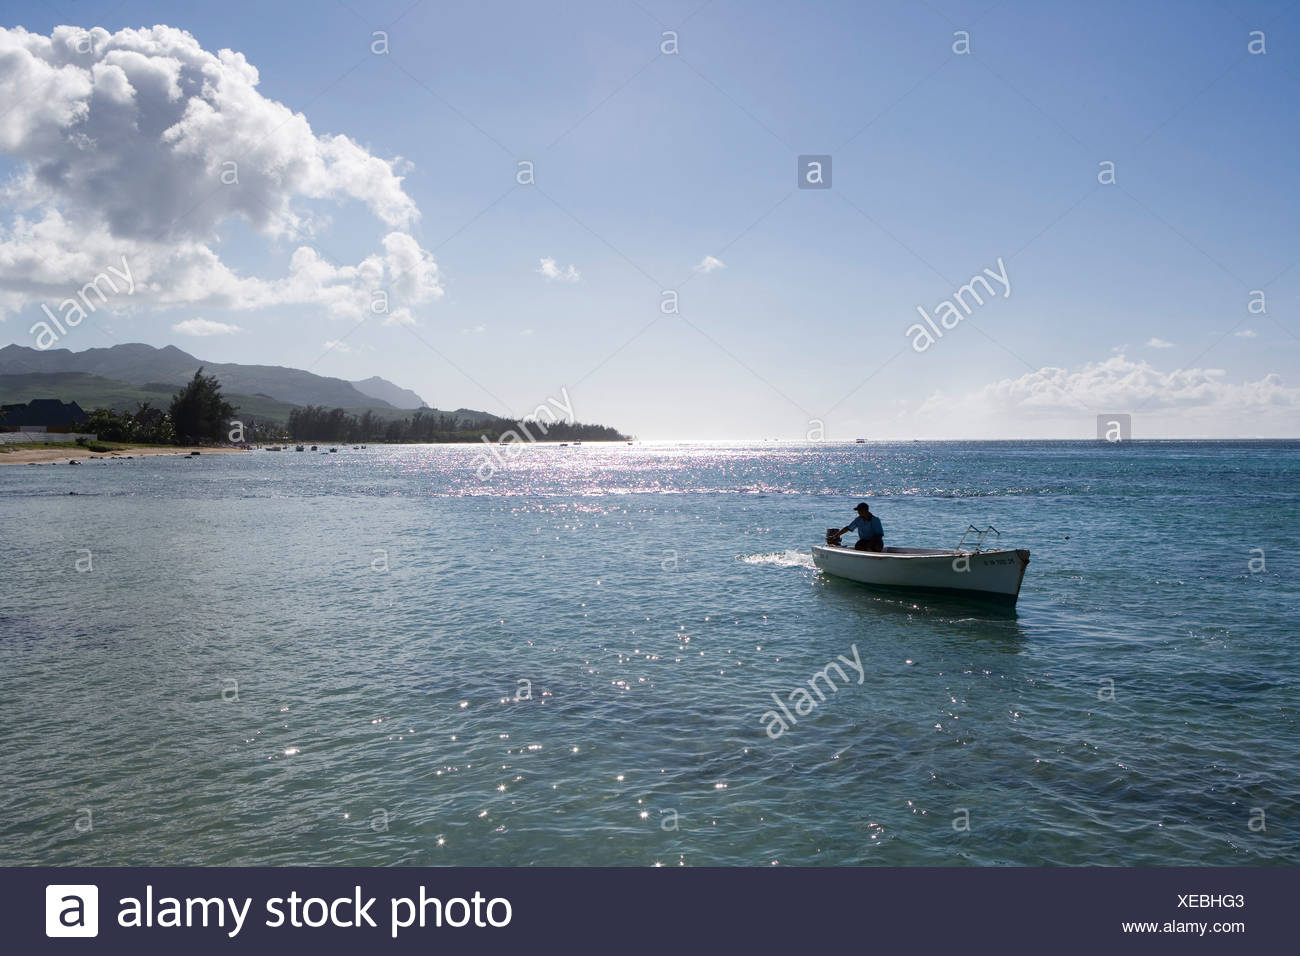 Fishing Boat and Coastline, Bel Ombre, Savanne District, Mauritius - Stock Image